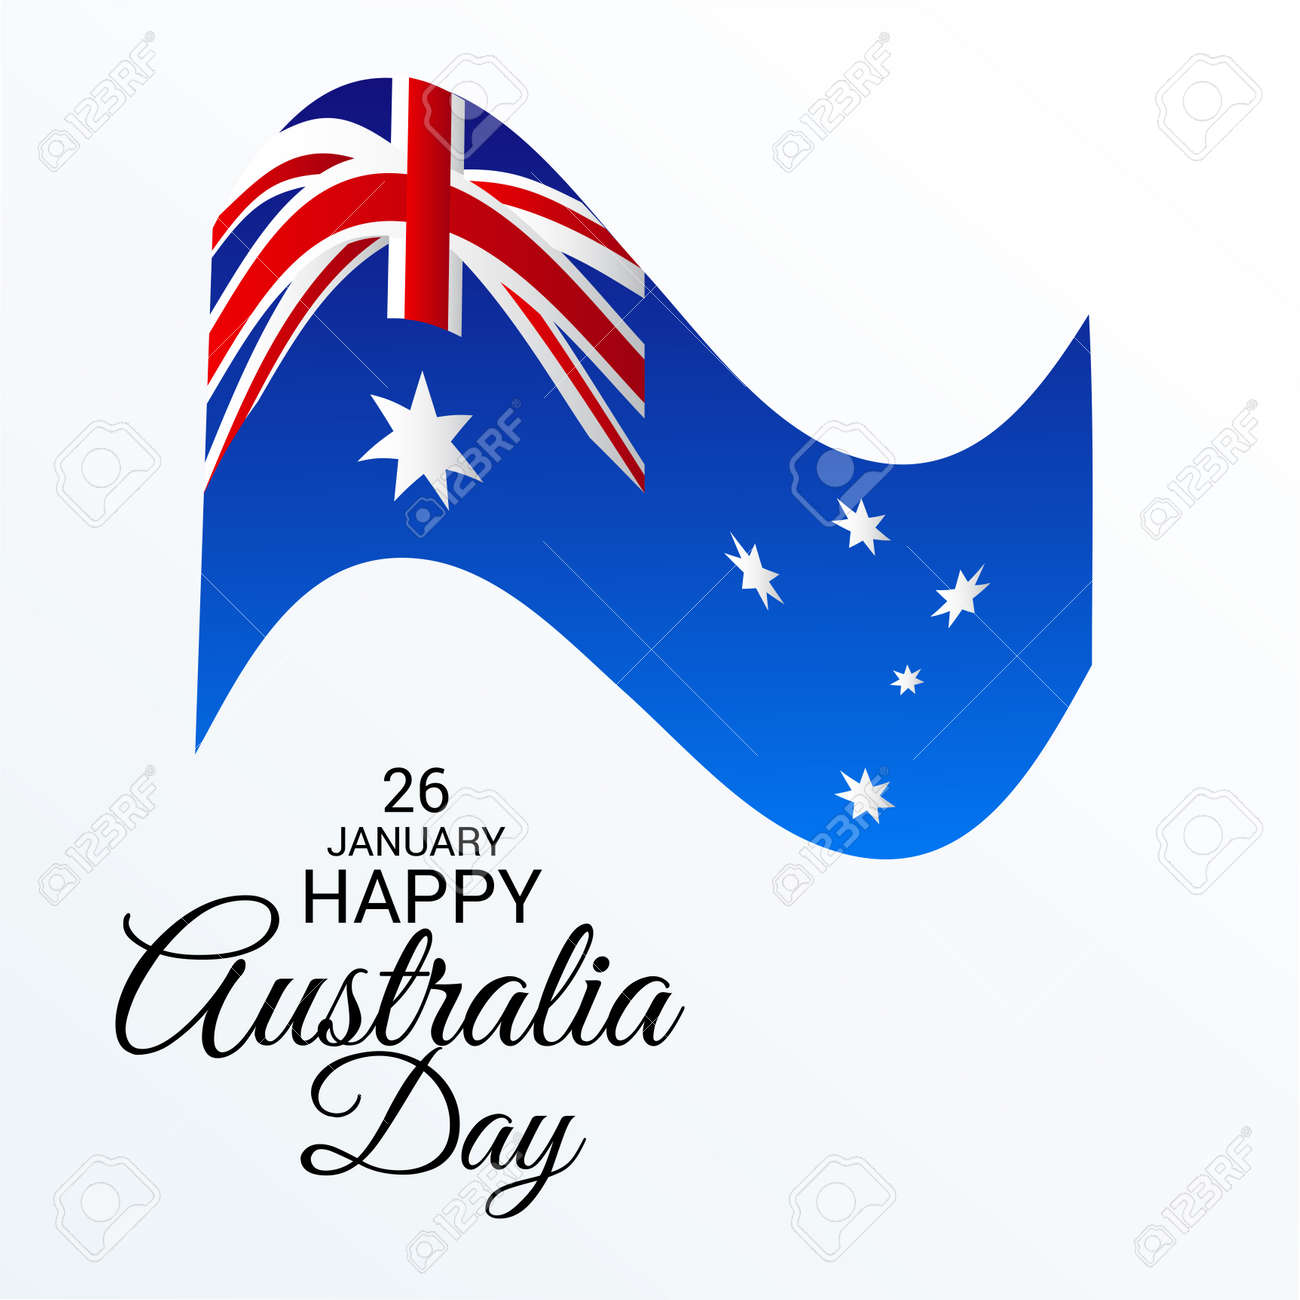 Happy Australia Day Greeting Card With Australian Flag Design